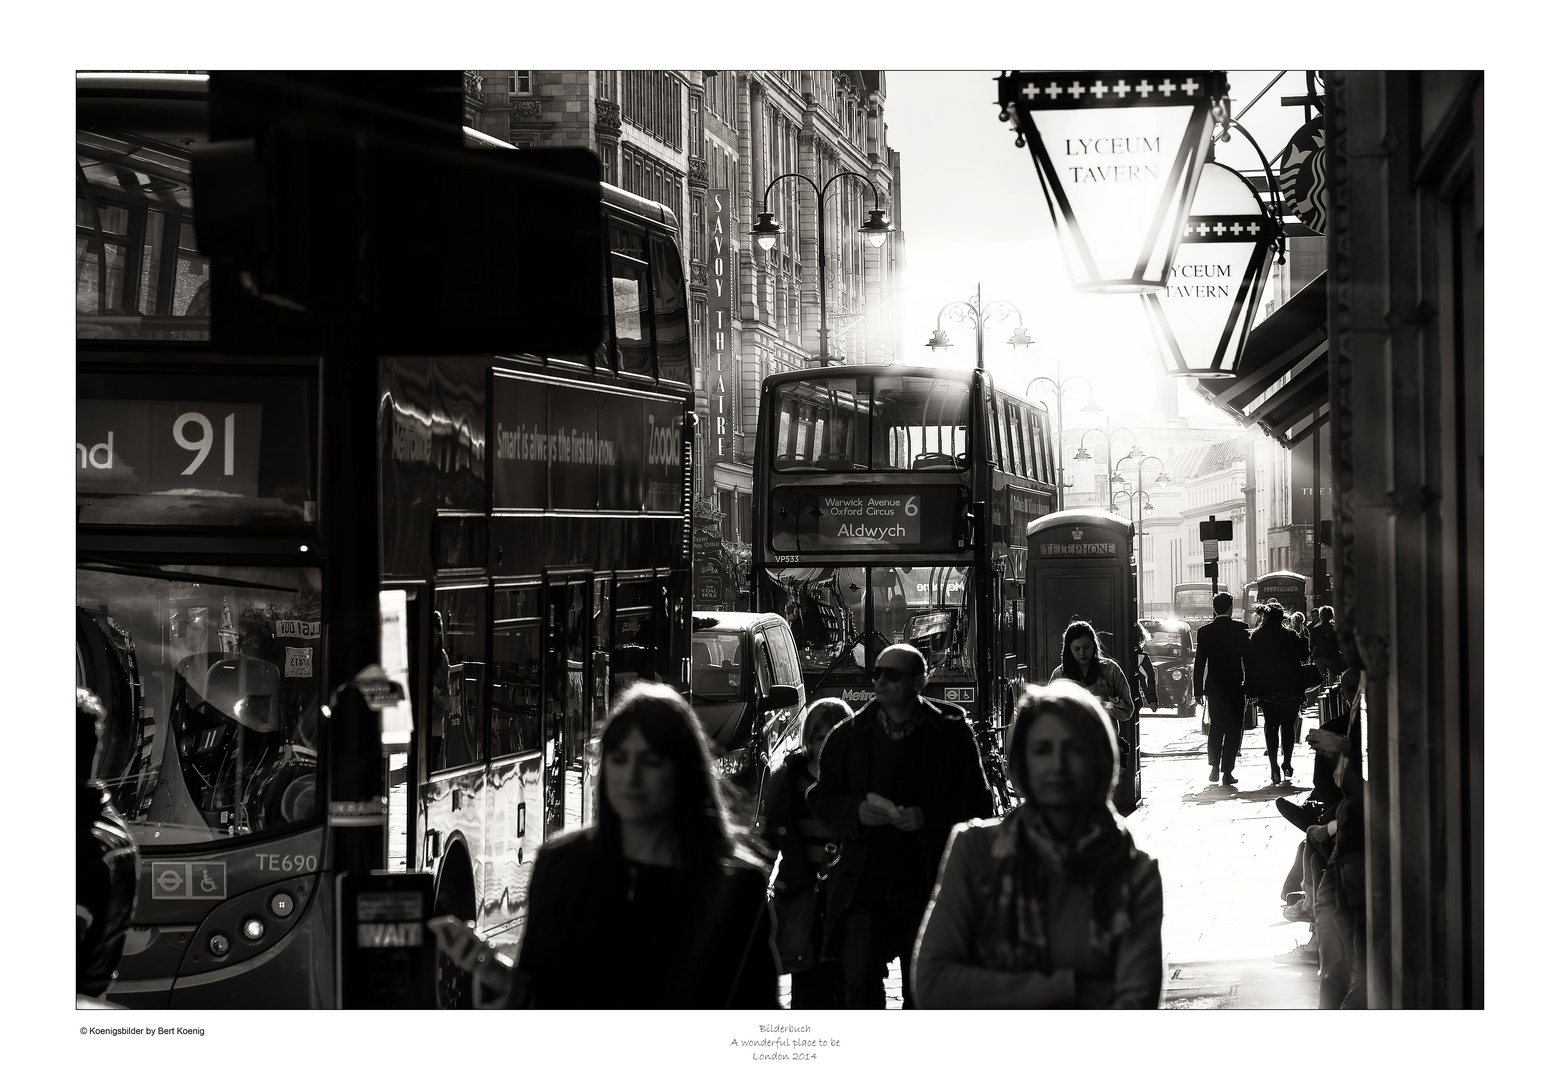 A wonderful place to be - Bus To Aldwych